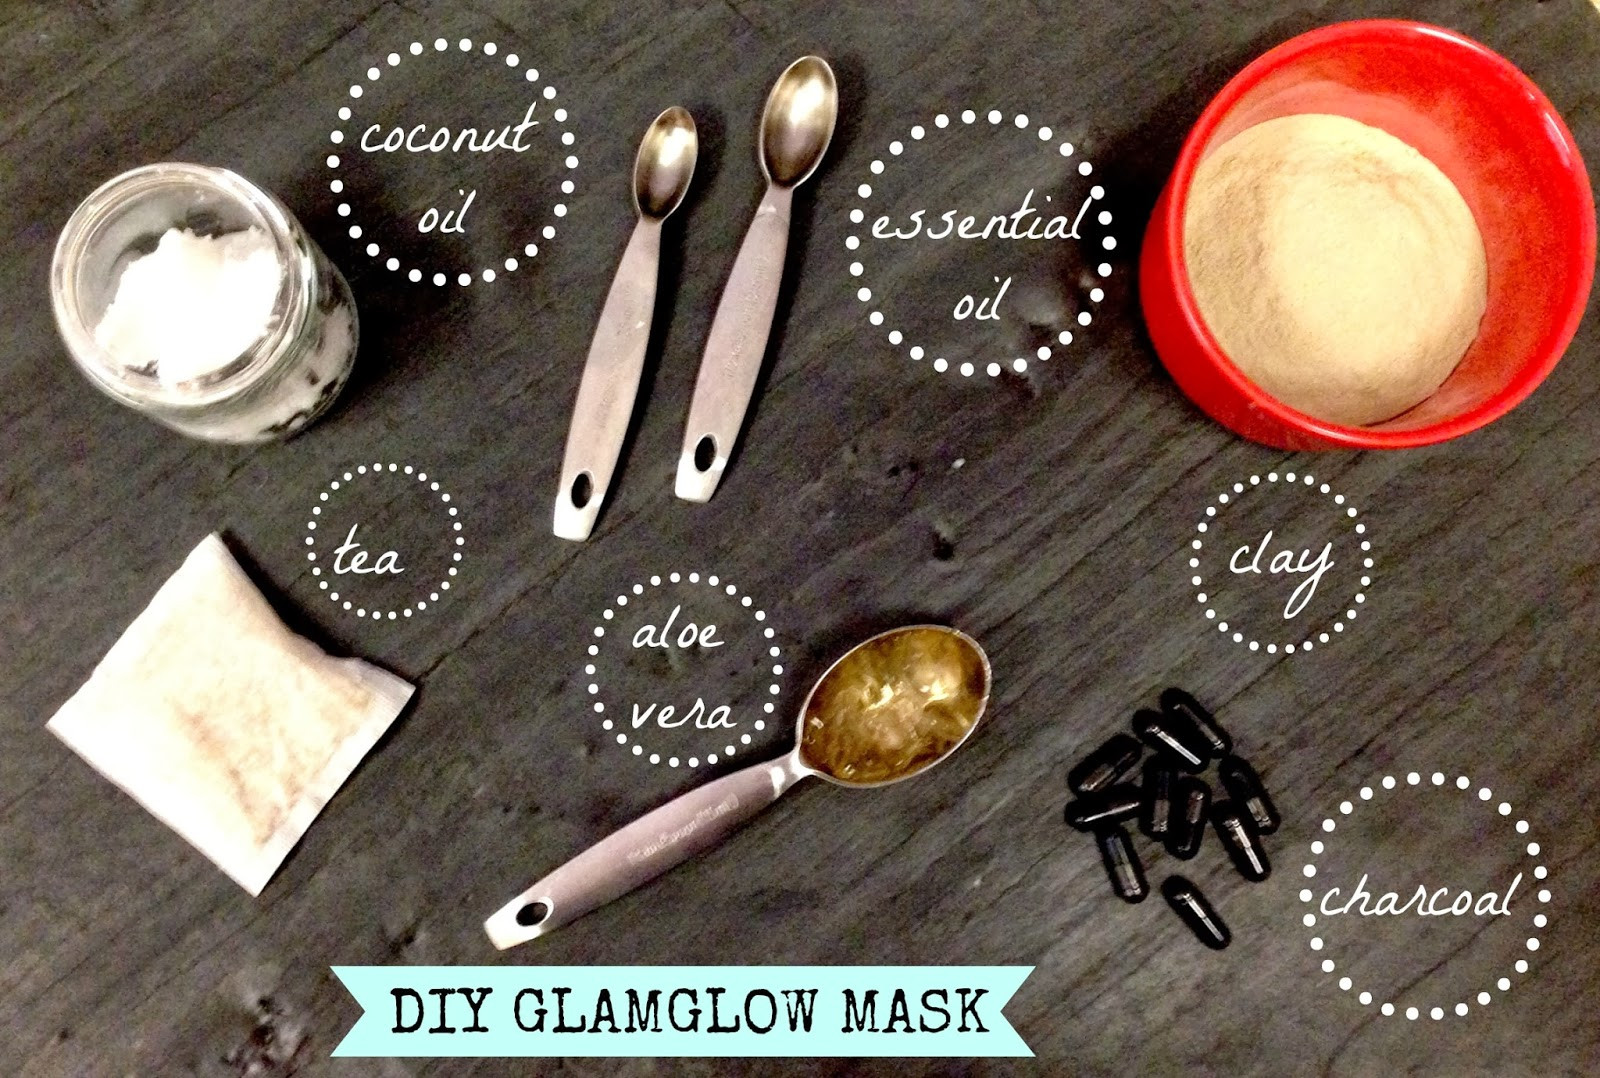 Best ideas about DIY Charcoal Face Mask . Save or Pin DIY GLAMGLOW FACE MASK Now.